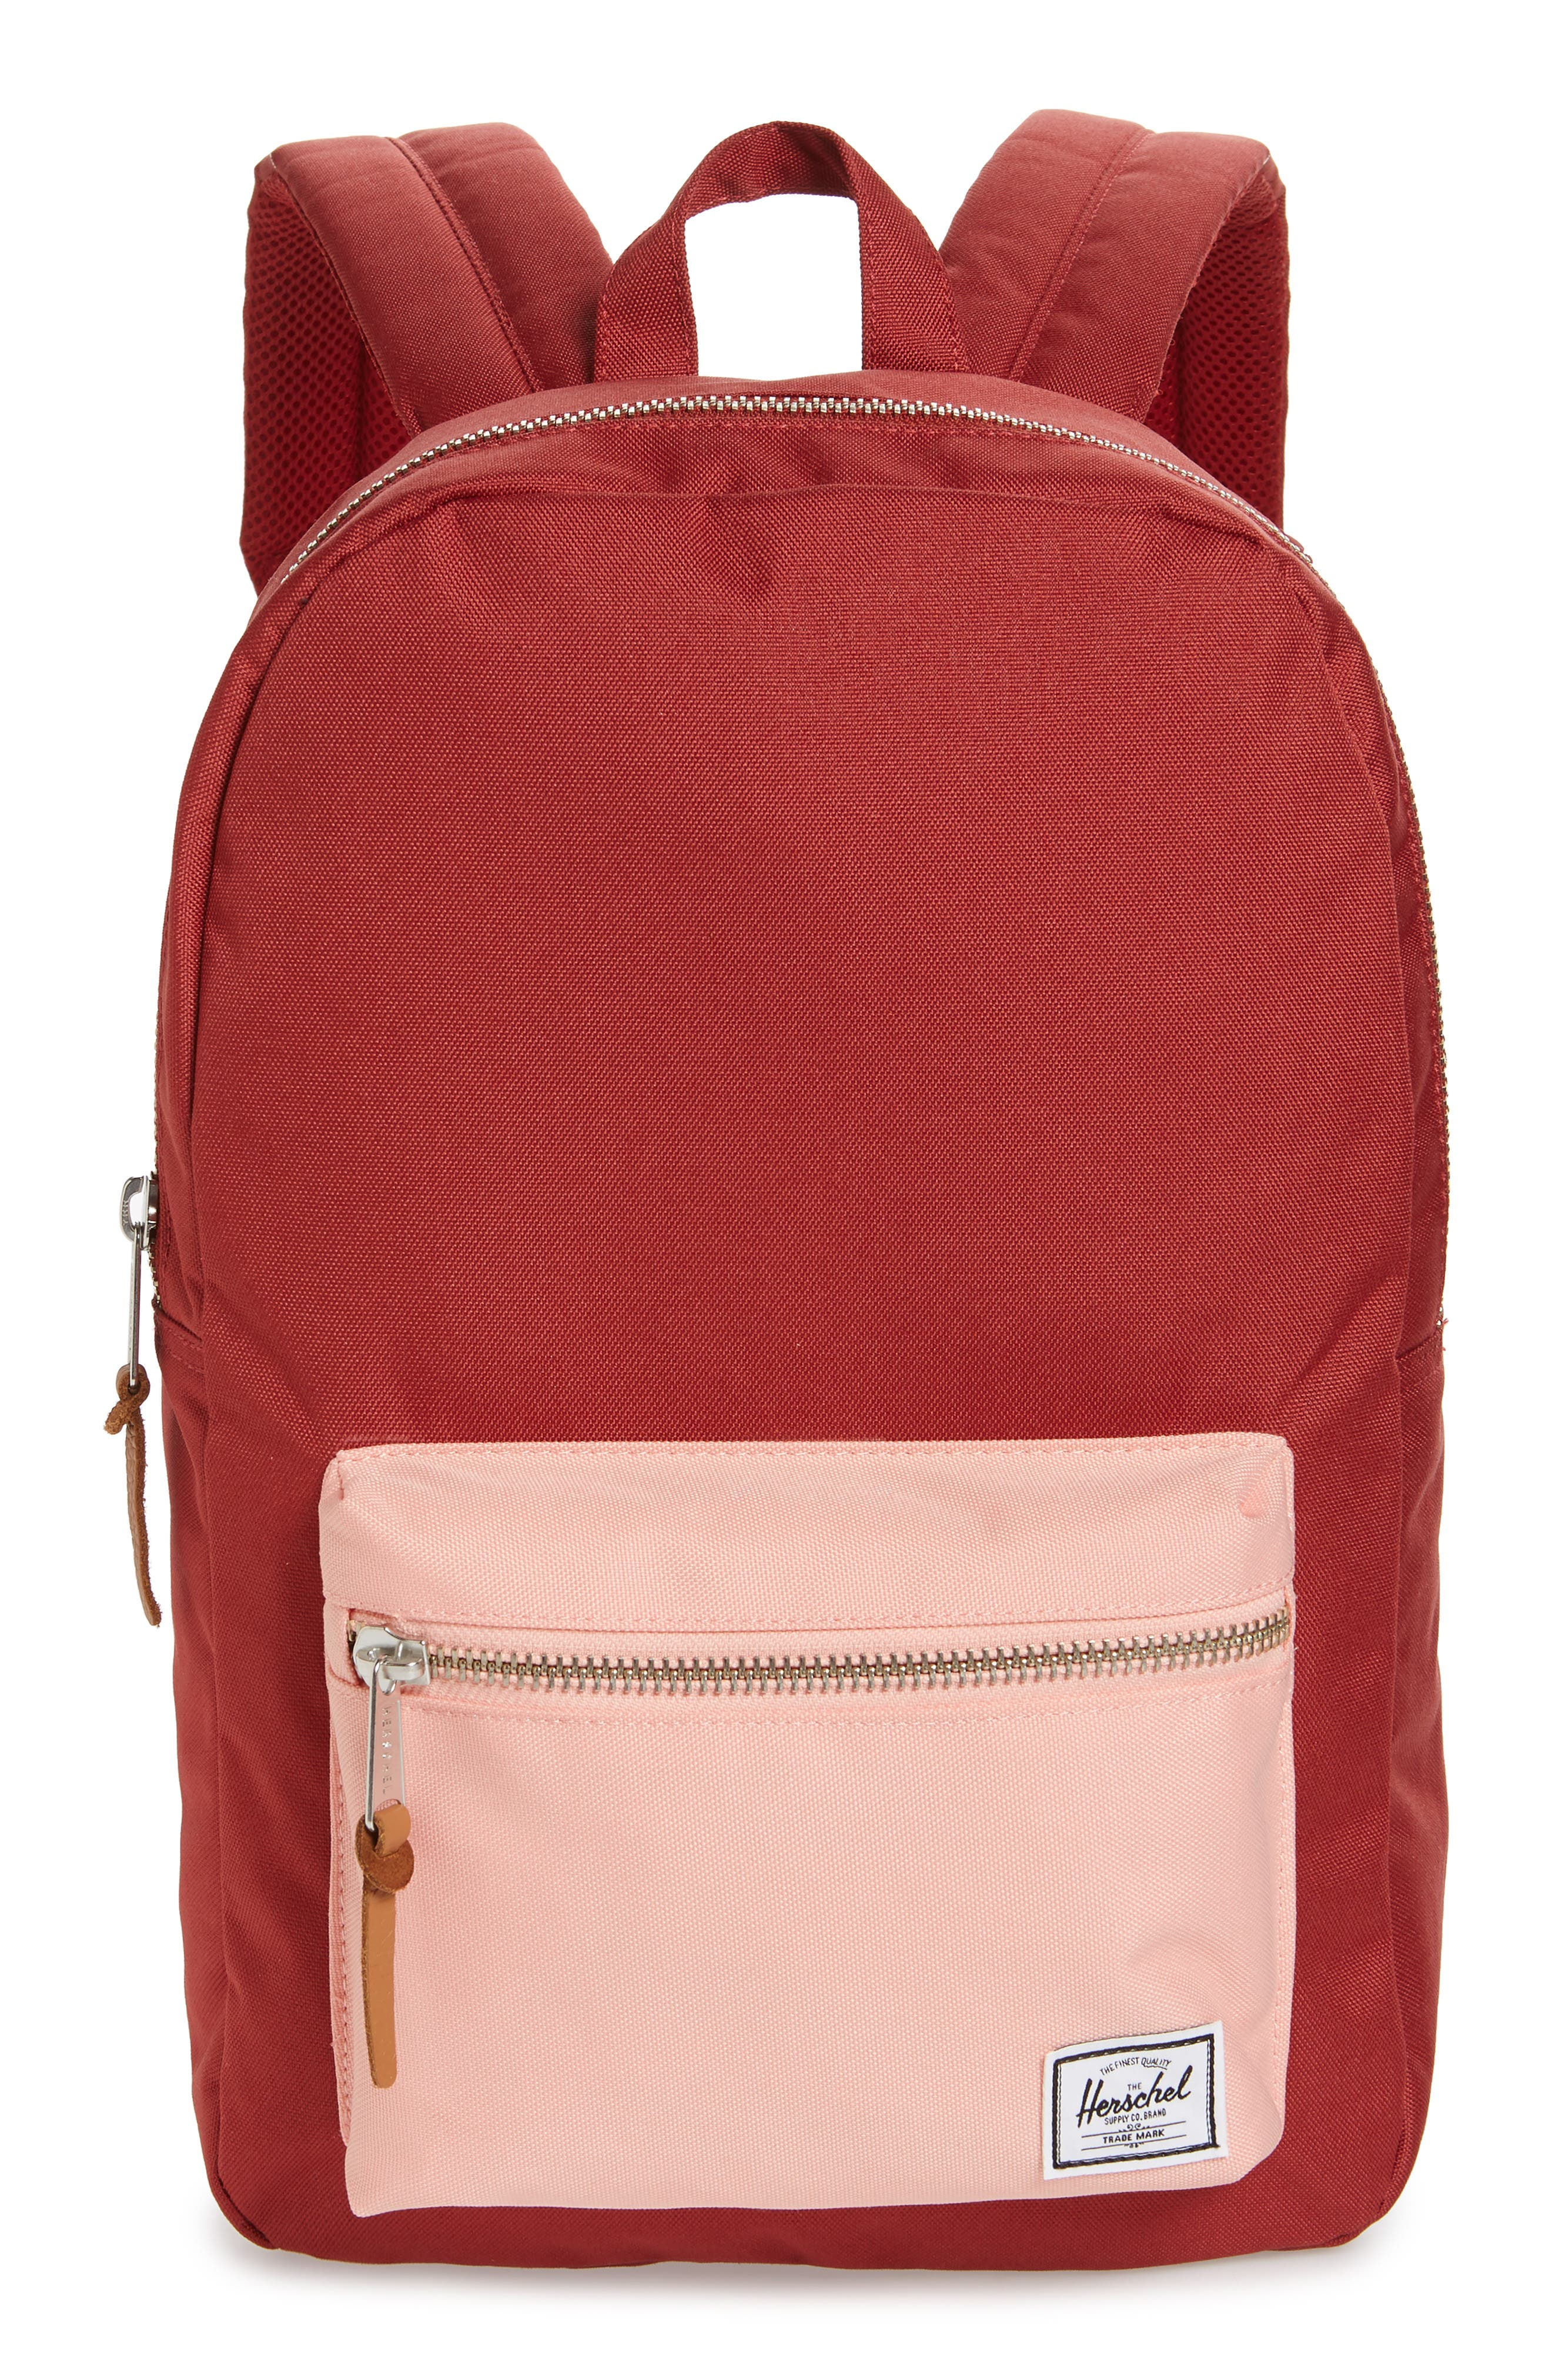 'Settlement Mid Volume' Backpack,                         Main,                         color, Brick Red/ Peach